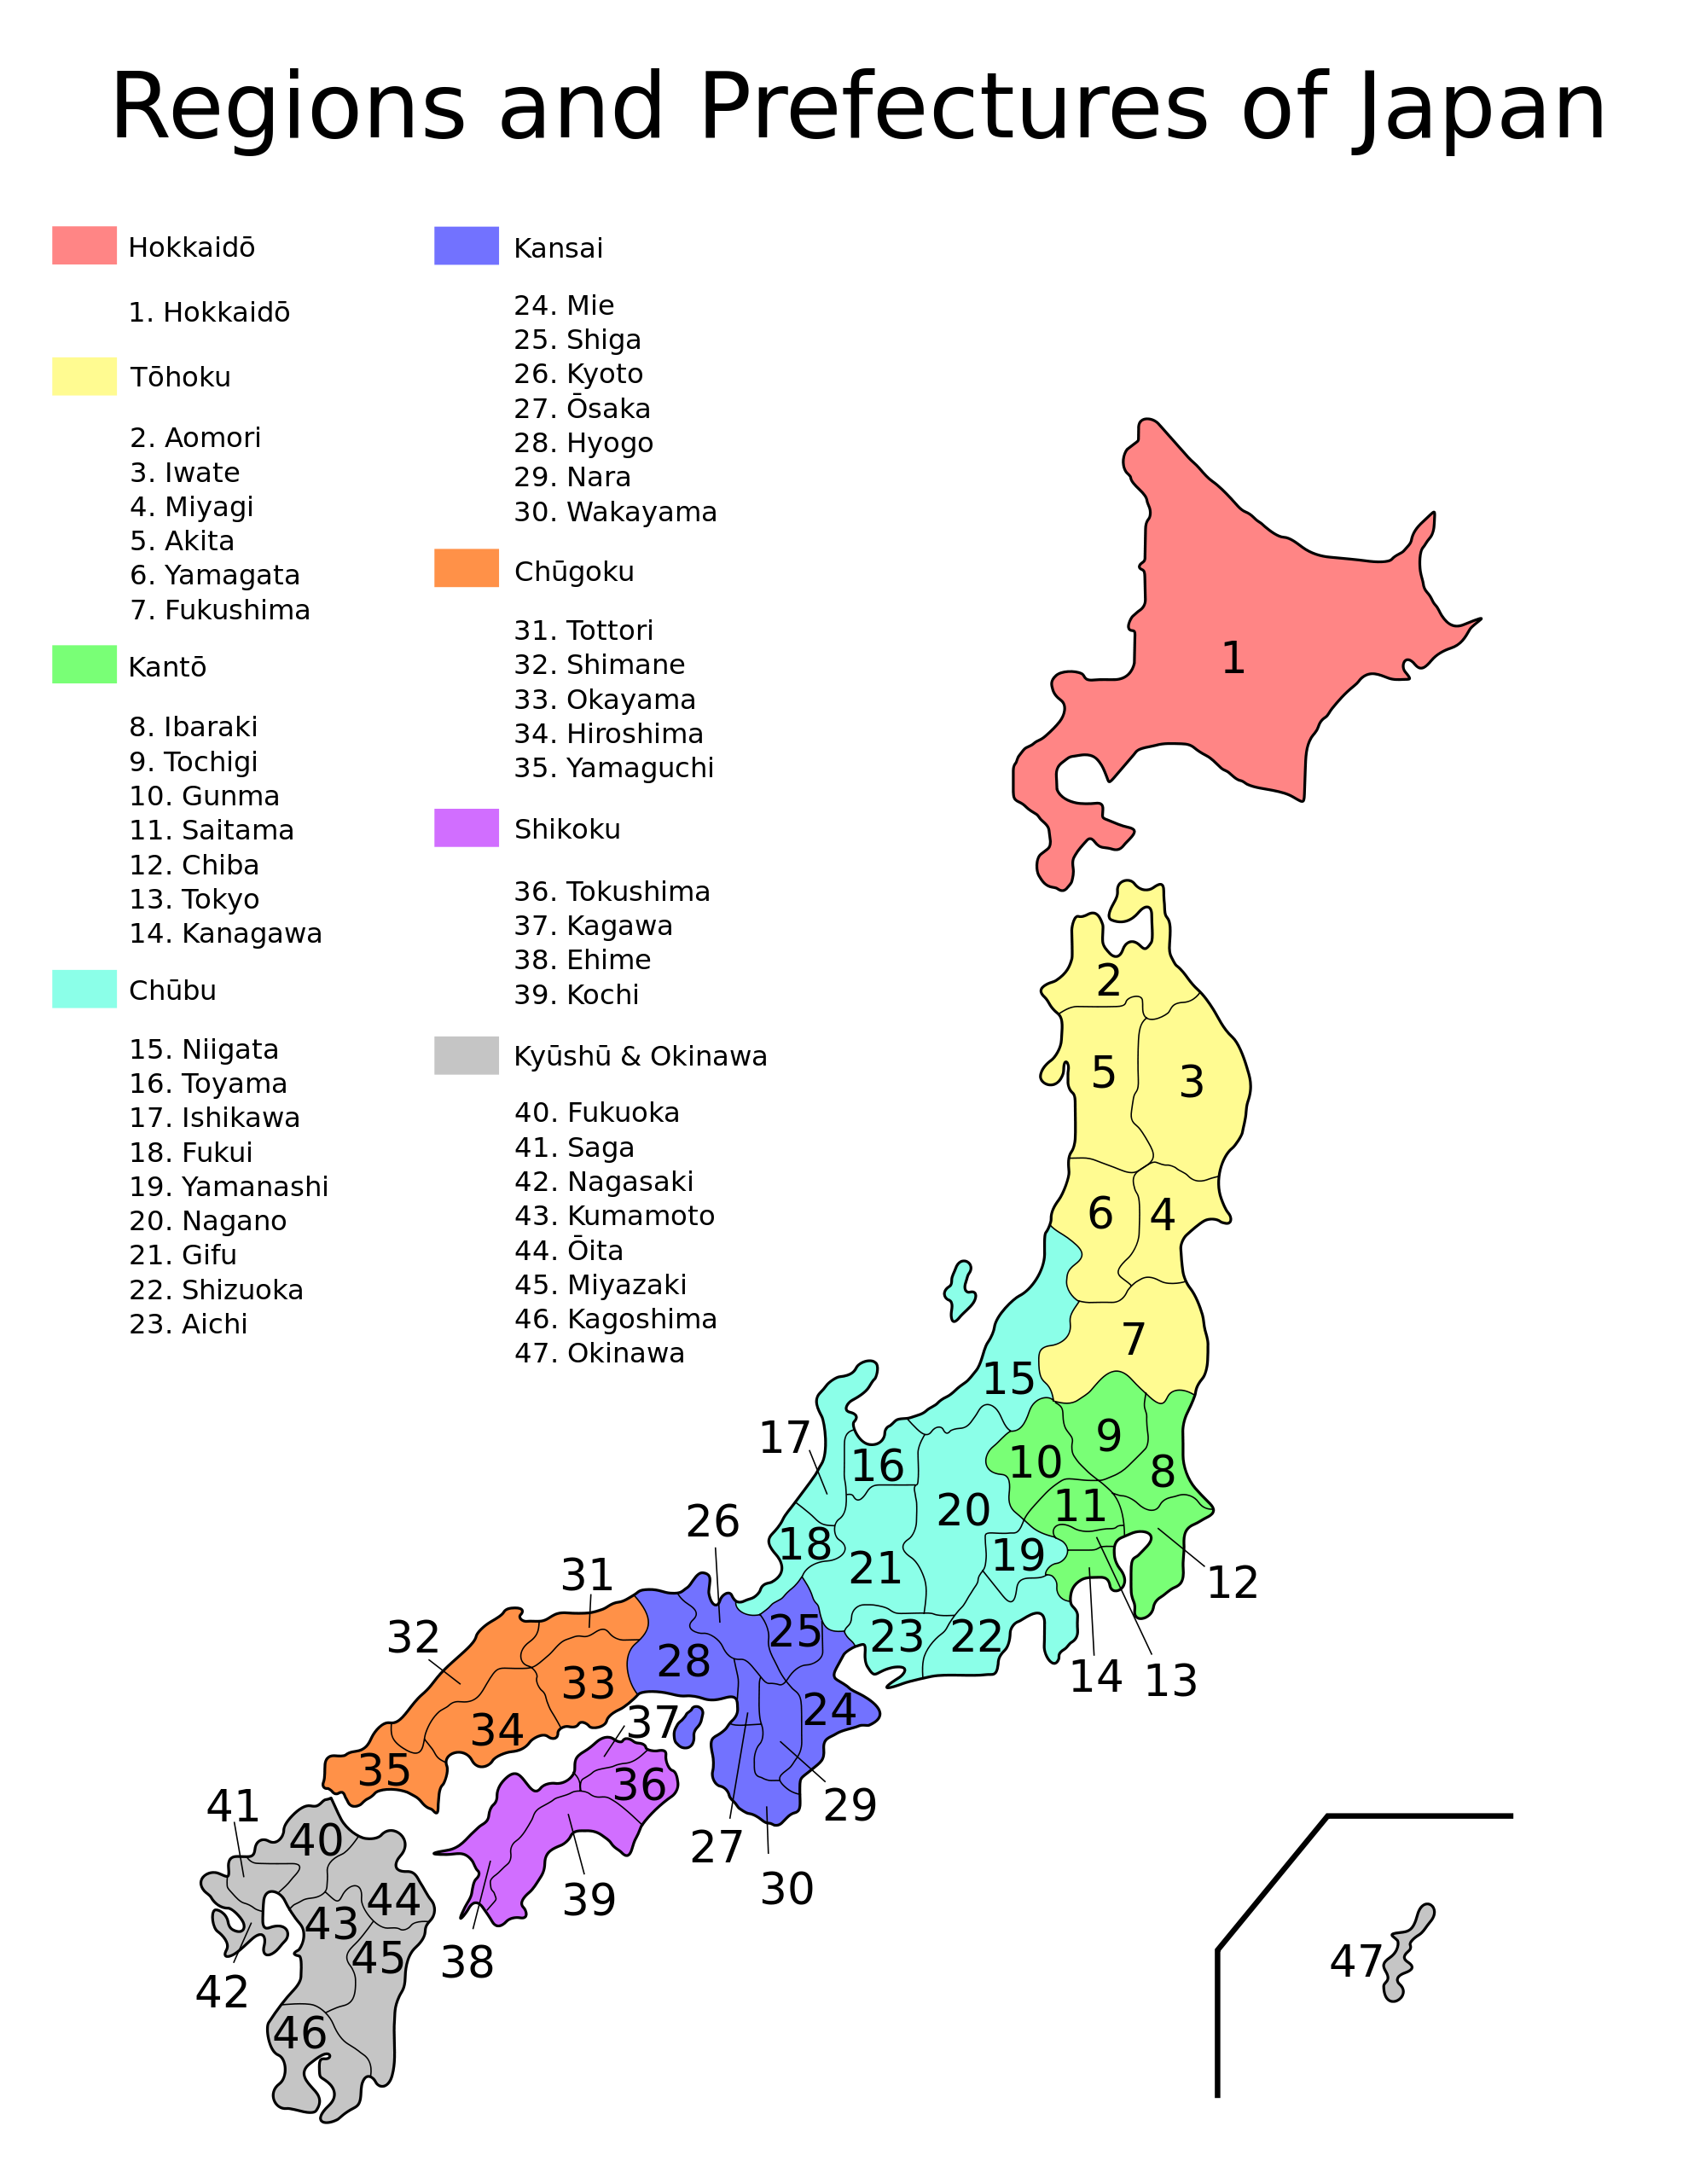 Transparent maps region. File regions and prefectures